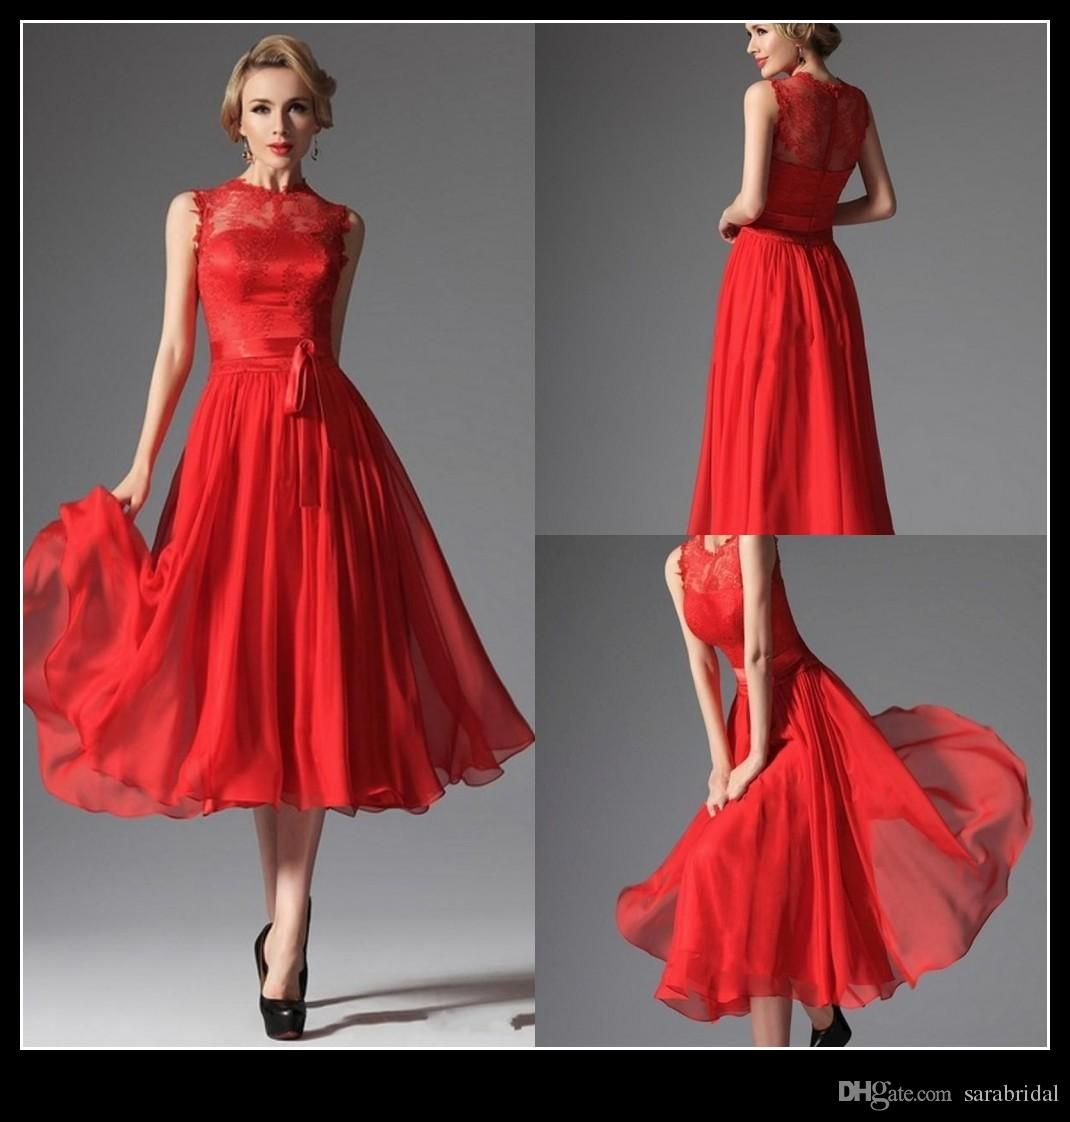 Charming tea length bridesmaid dress 2016 lace chiffon a line red charming tea length bridesmaid dress 2016 lace chiffon a line red wedding dress party junior maid ombrellifo Image collections